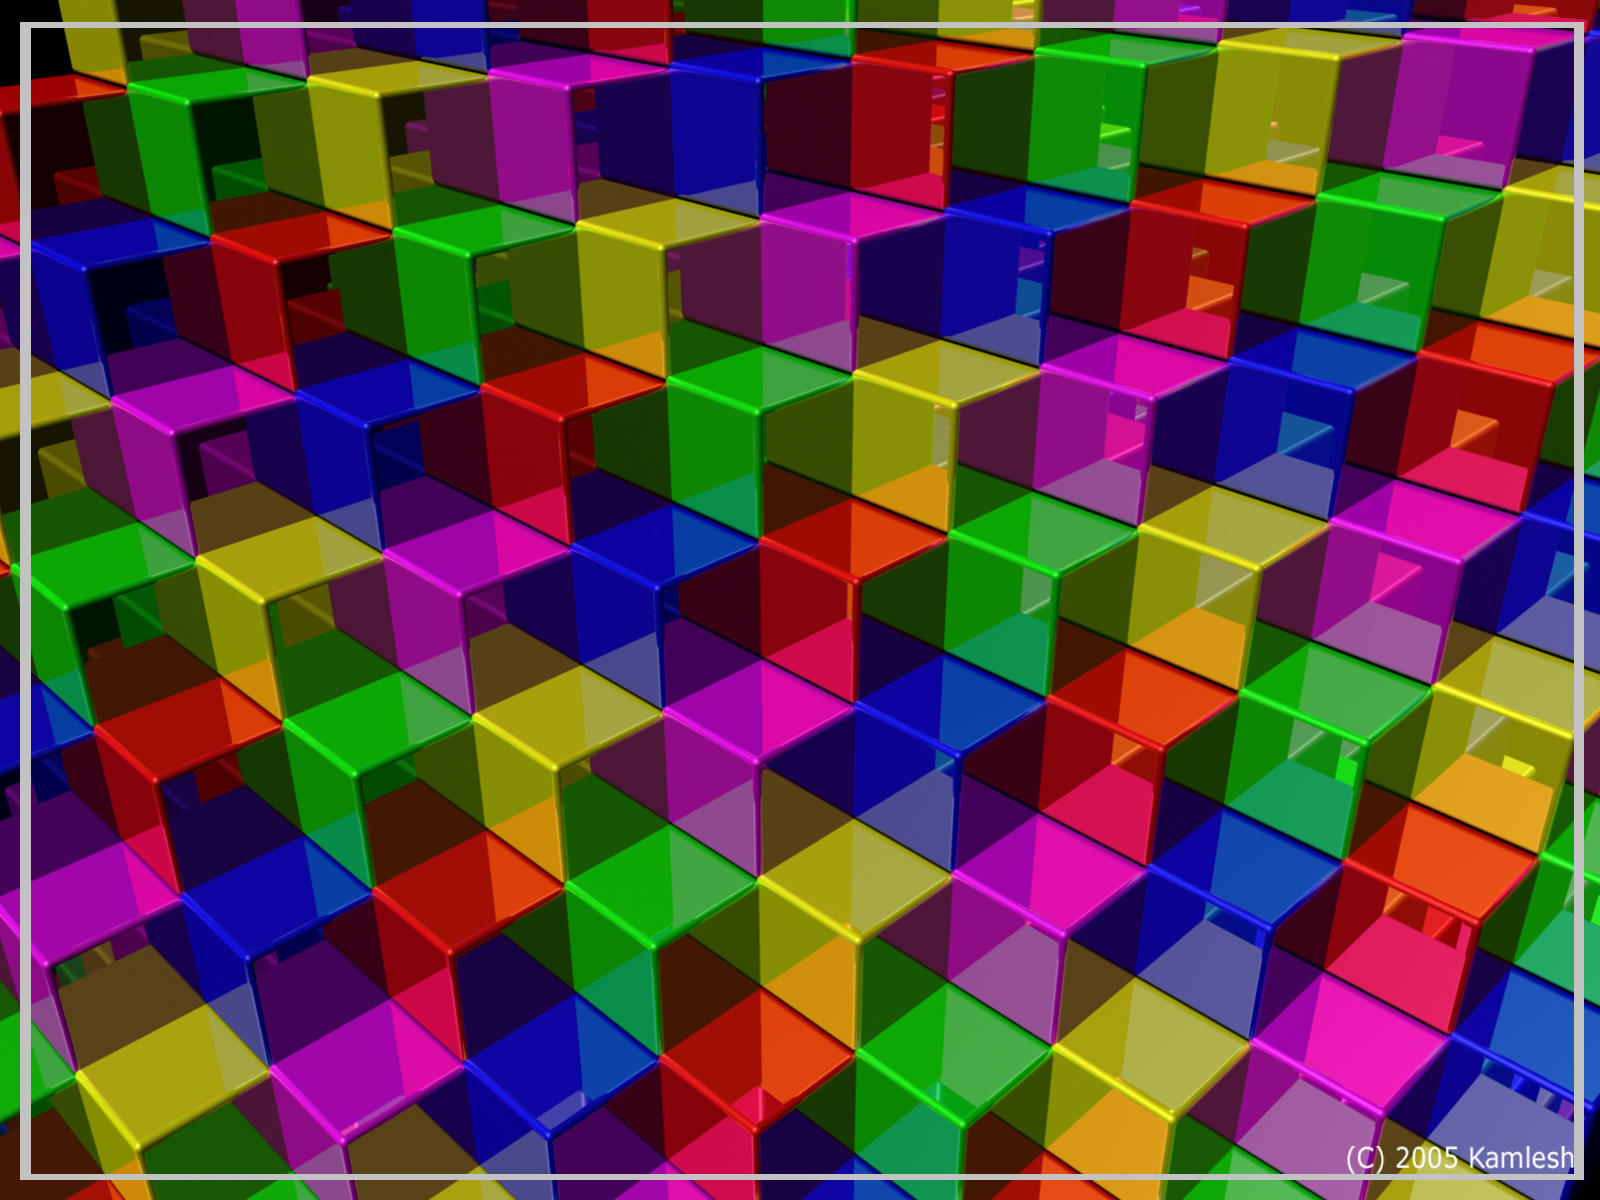 Cube pattern by kamlesh on deviantart for 3 dimensional cube template